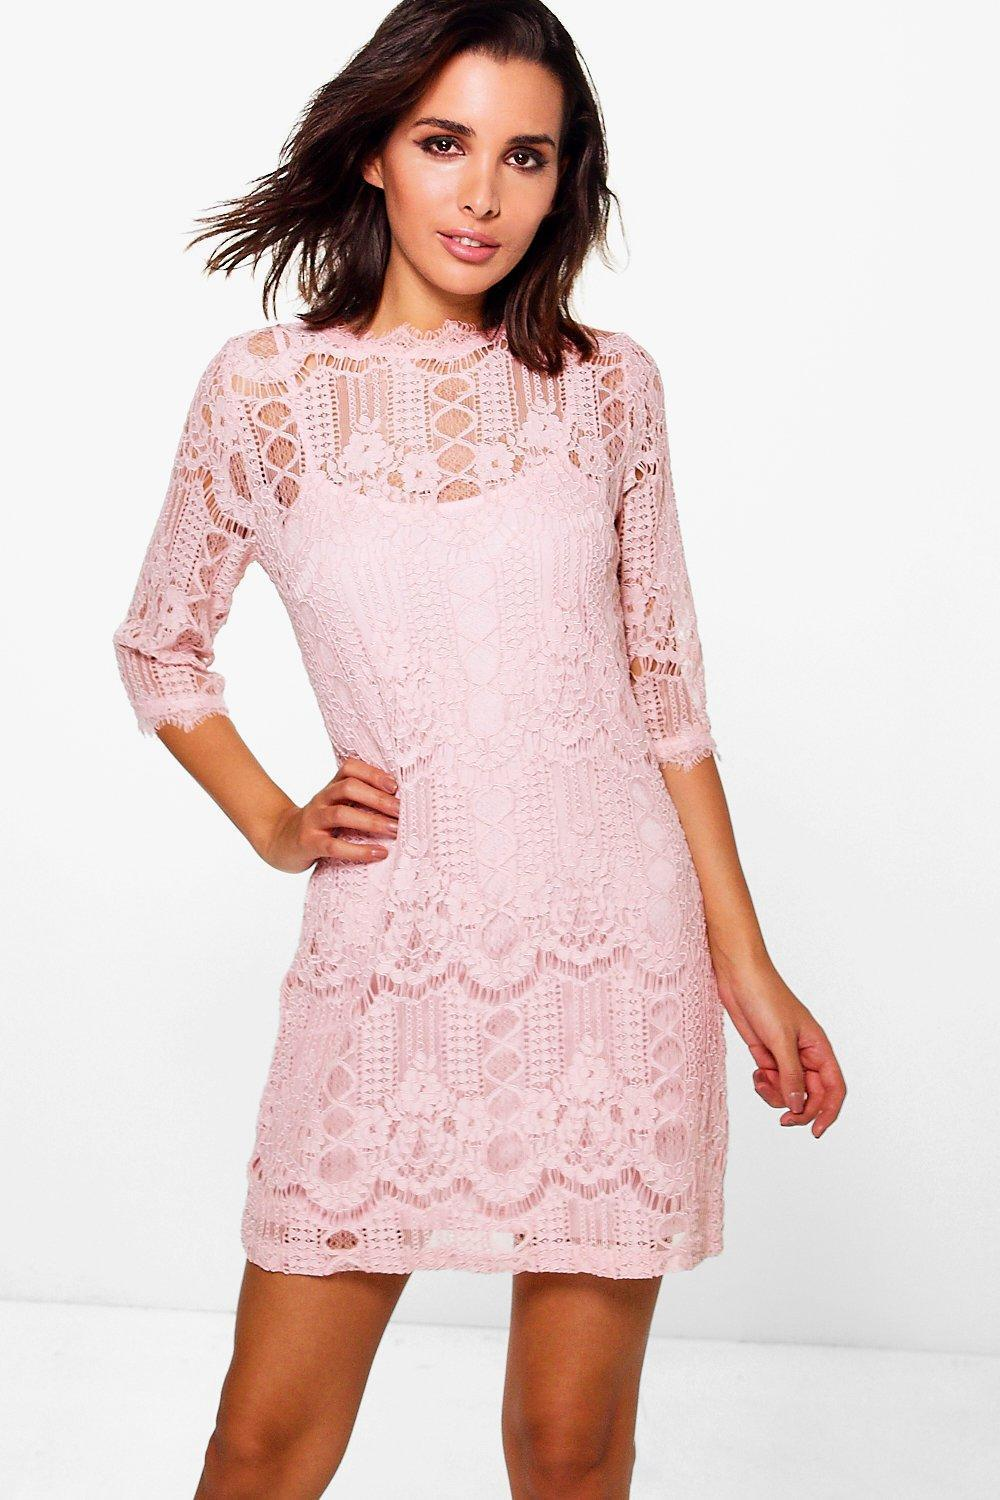 Lyst - Boohoo Ziggy Eyelash Lace Short Sleeve Shift Dress in Pink 191d0e1f2